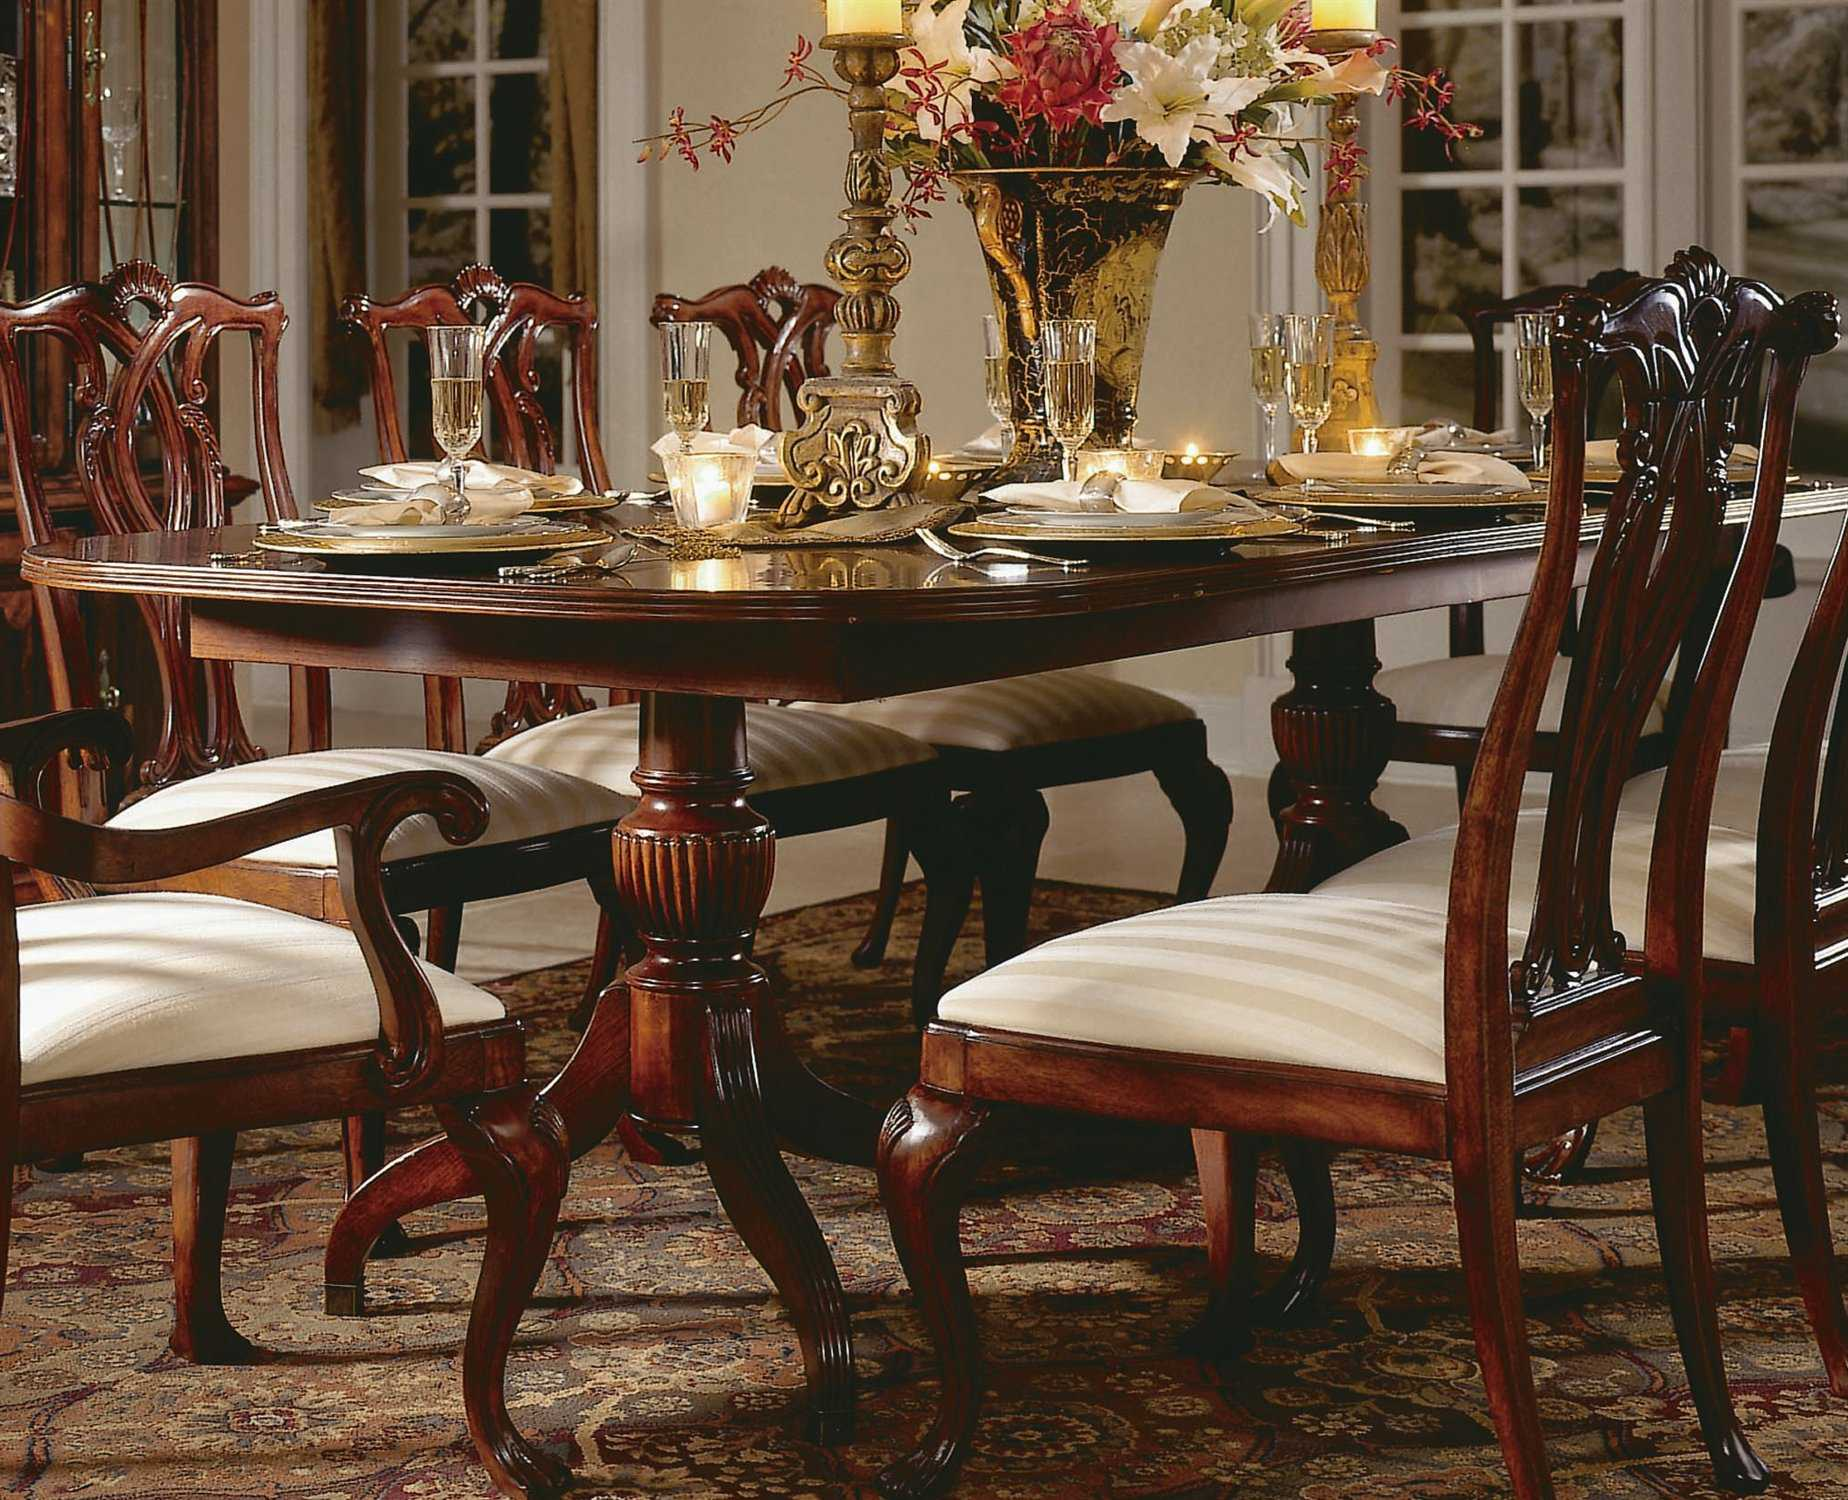 table grove chat rooms Living room sets for sale find full living room suites & furniture collections complete with sofas, loveseats, tables, etc fabric upholstery, leather & more.